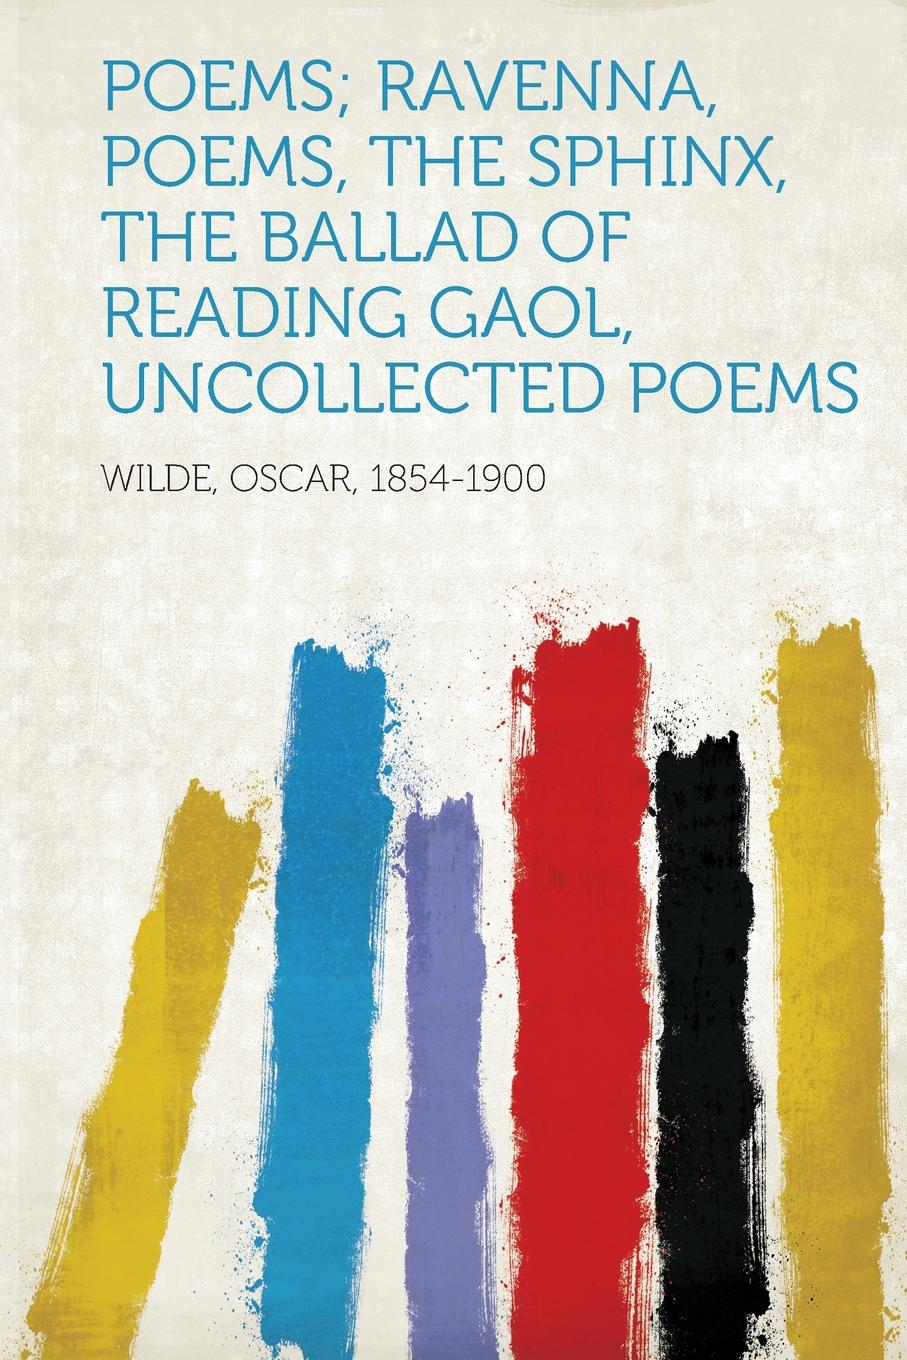 Poems; Ravenna, Poems, The Sphinx, The Ballad of Reading Gaol, Uncollected Poems the ballad of reading gaol